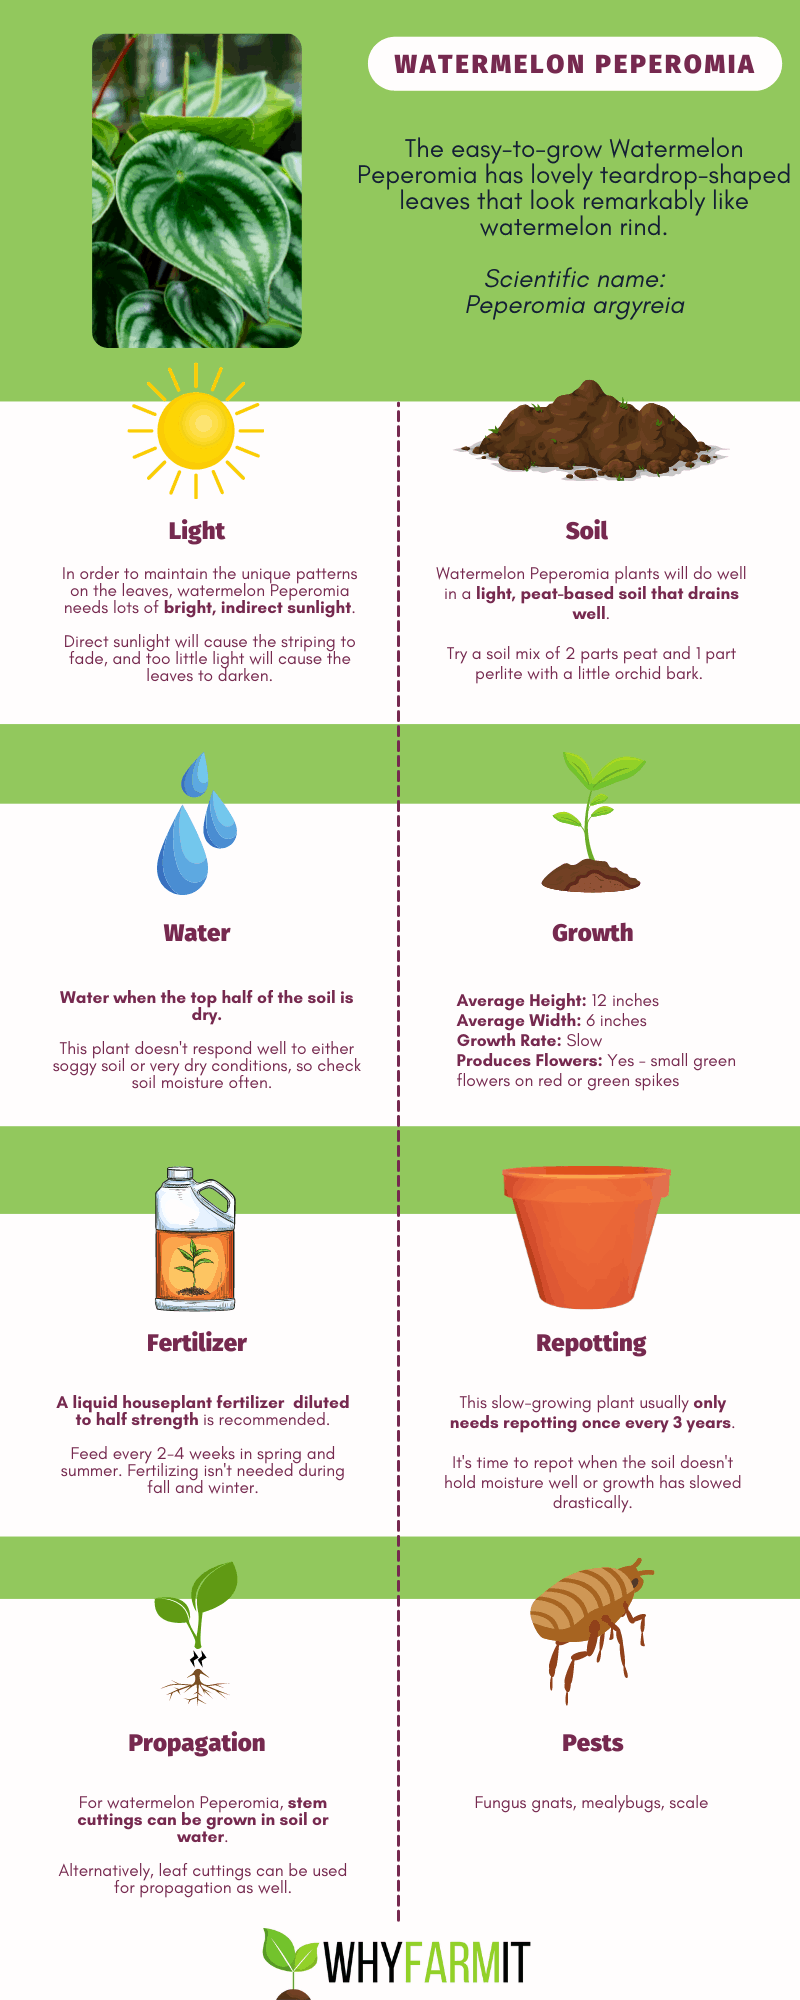 Infographic outling care for watermelon Peperomia